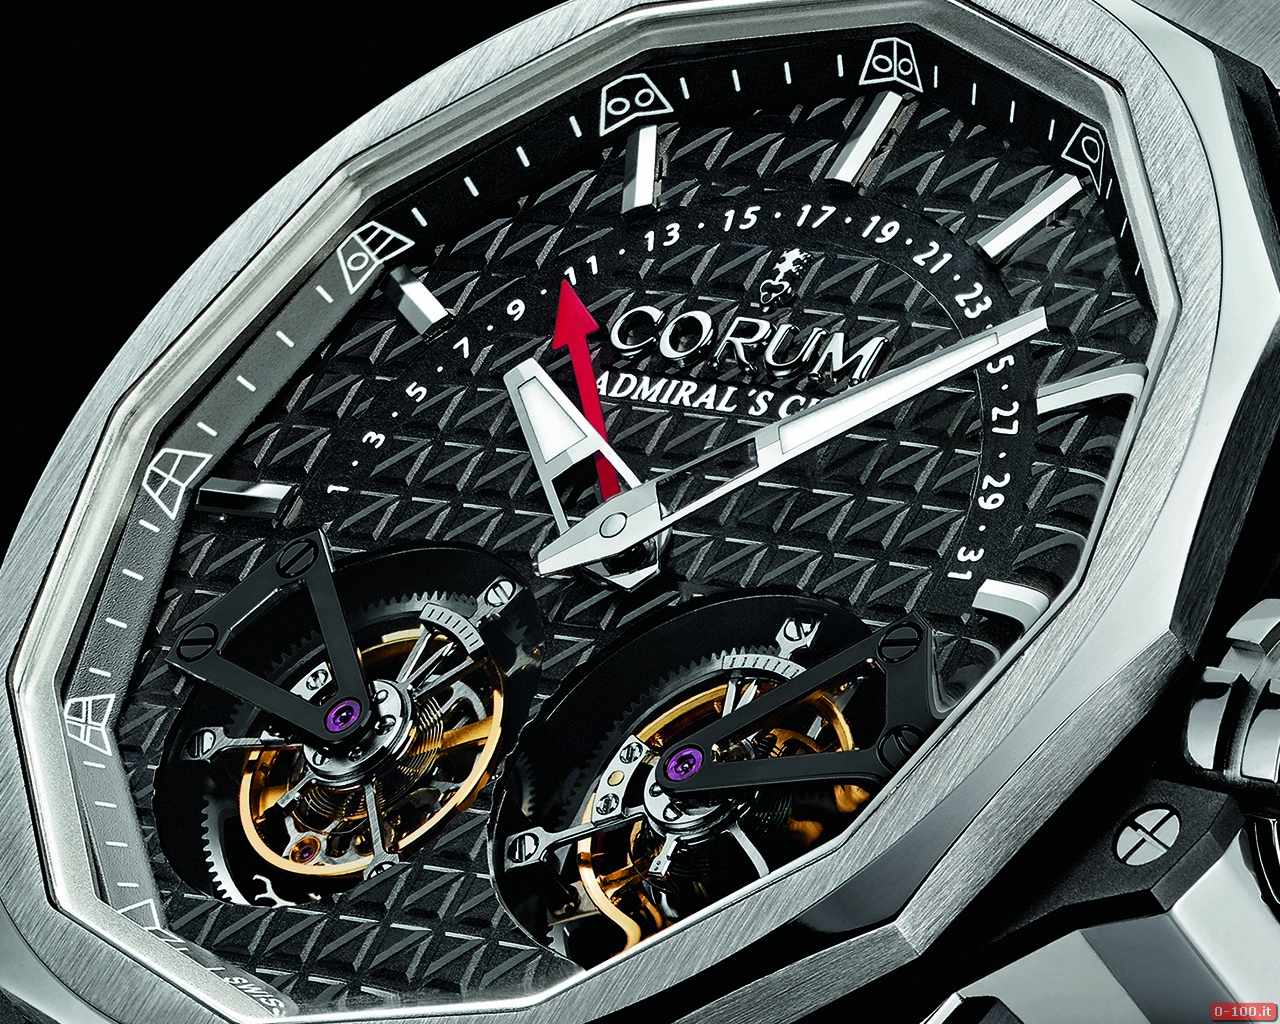 anteprima-baselworld-2014-corum-admirals-cup-ac-one-45-double-tourbillon_0-1003